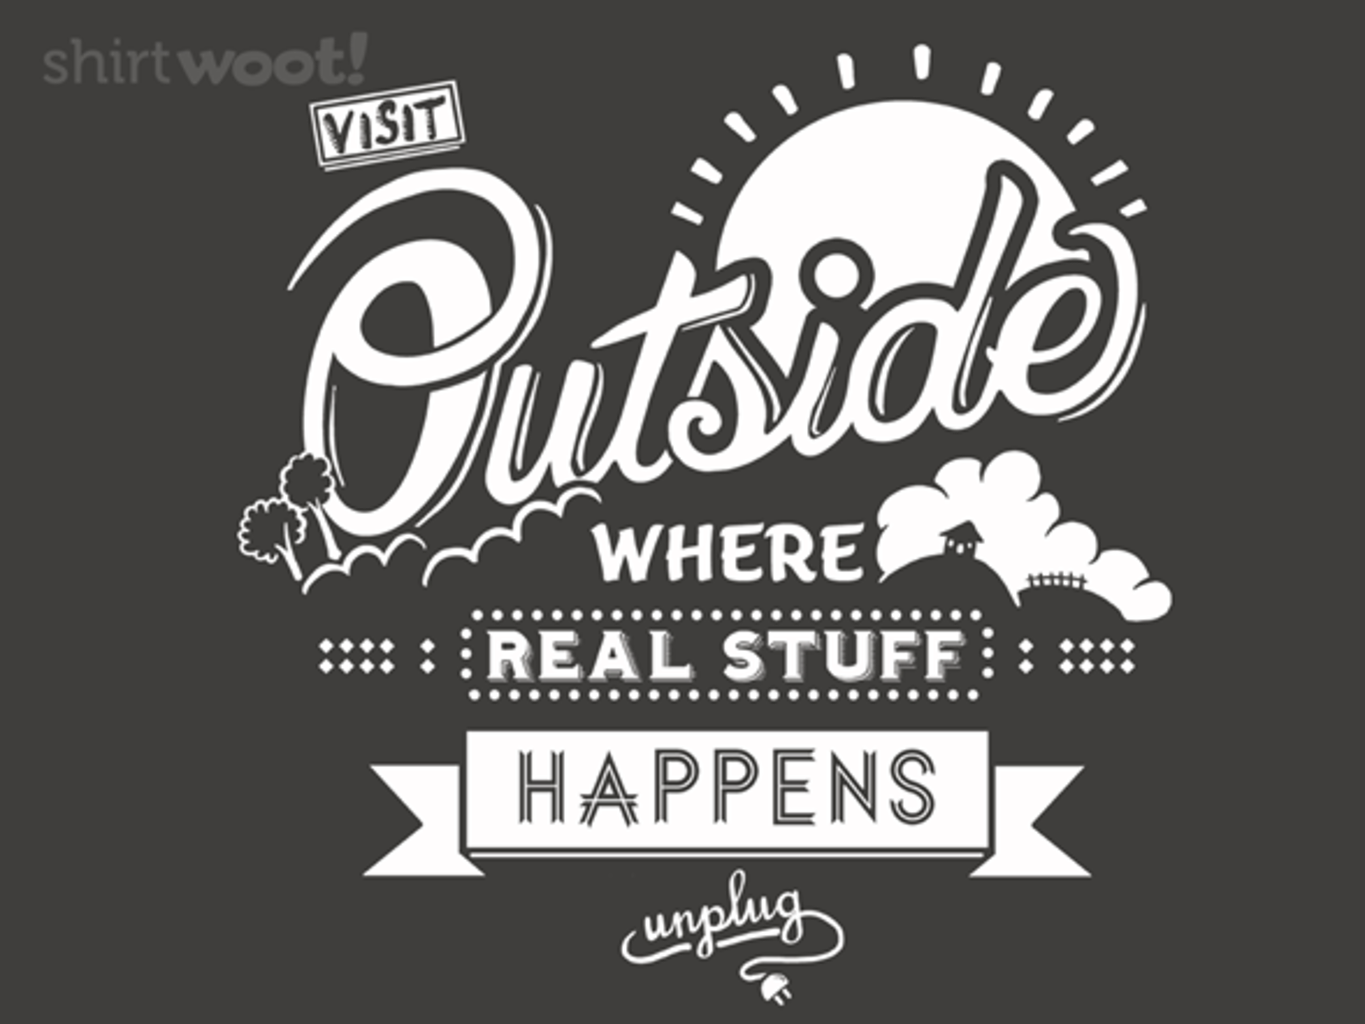 Woot!: Visit Outside